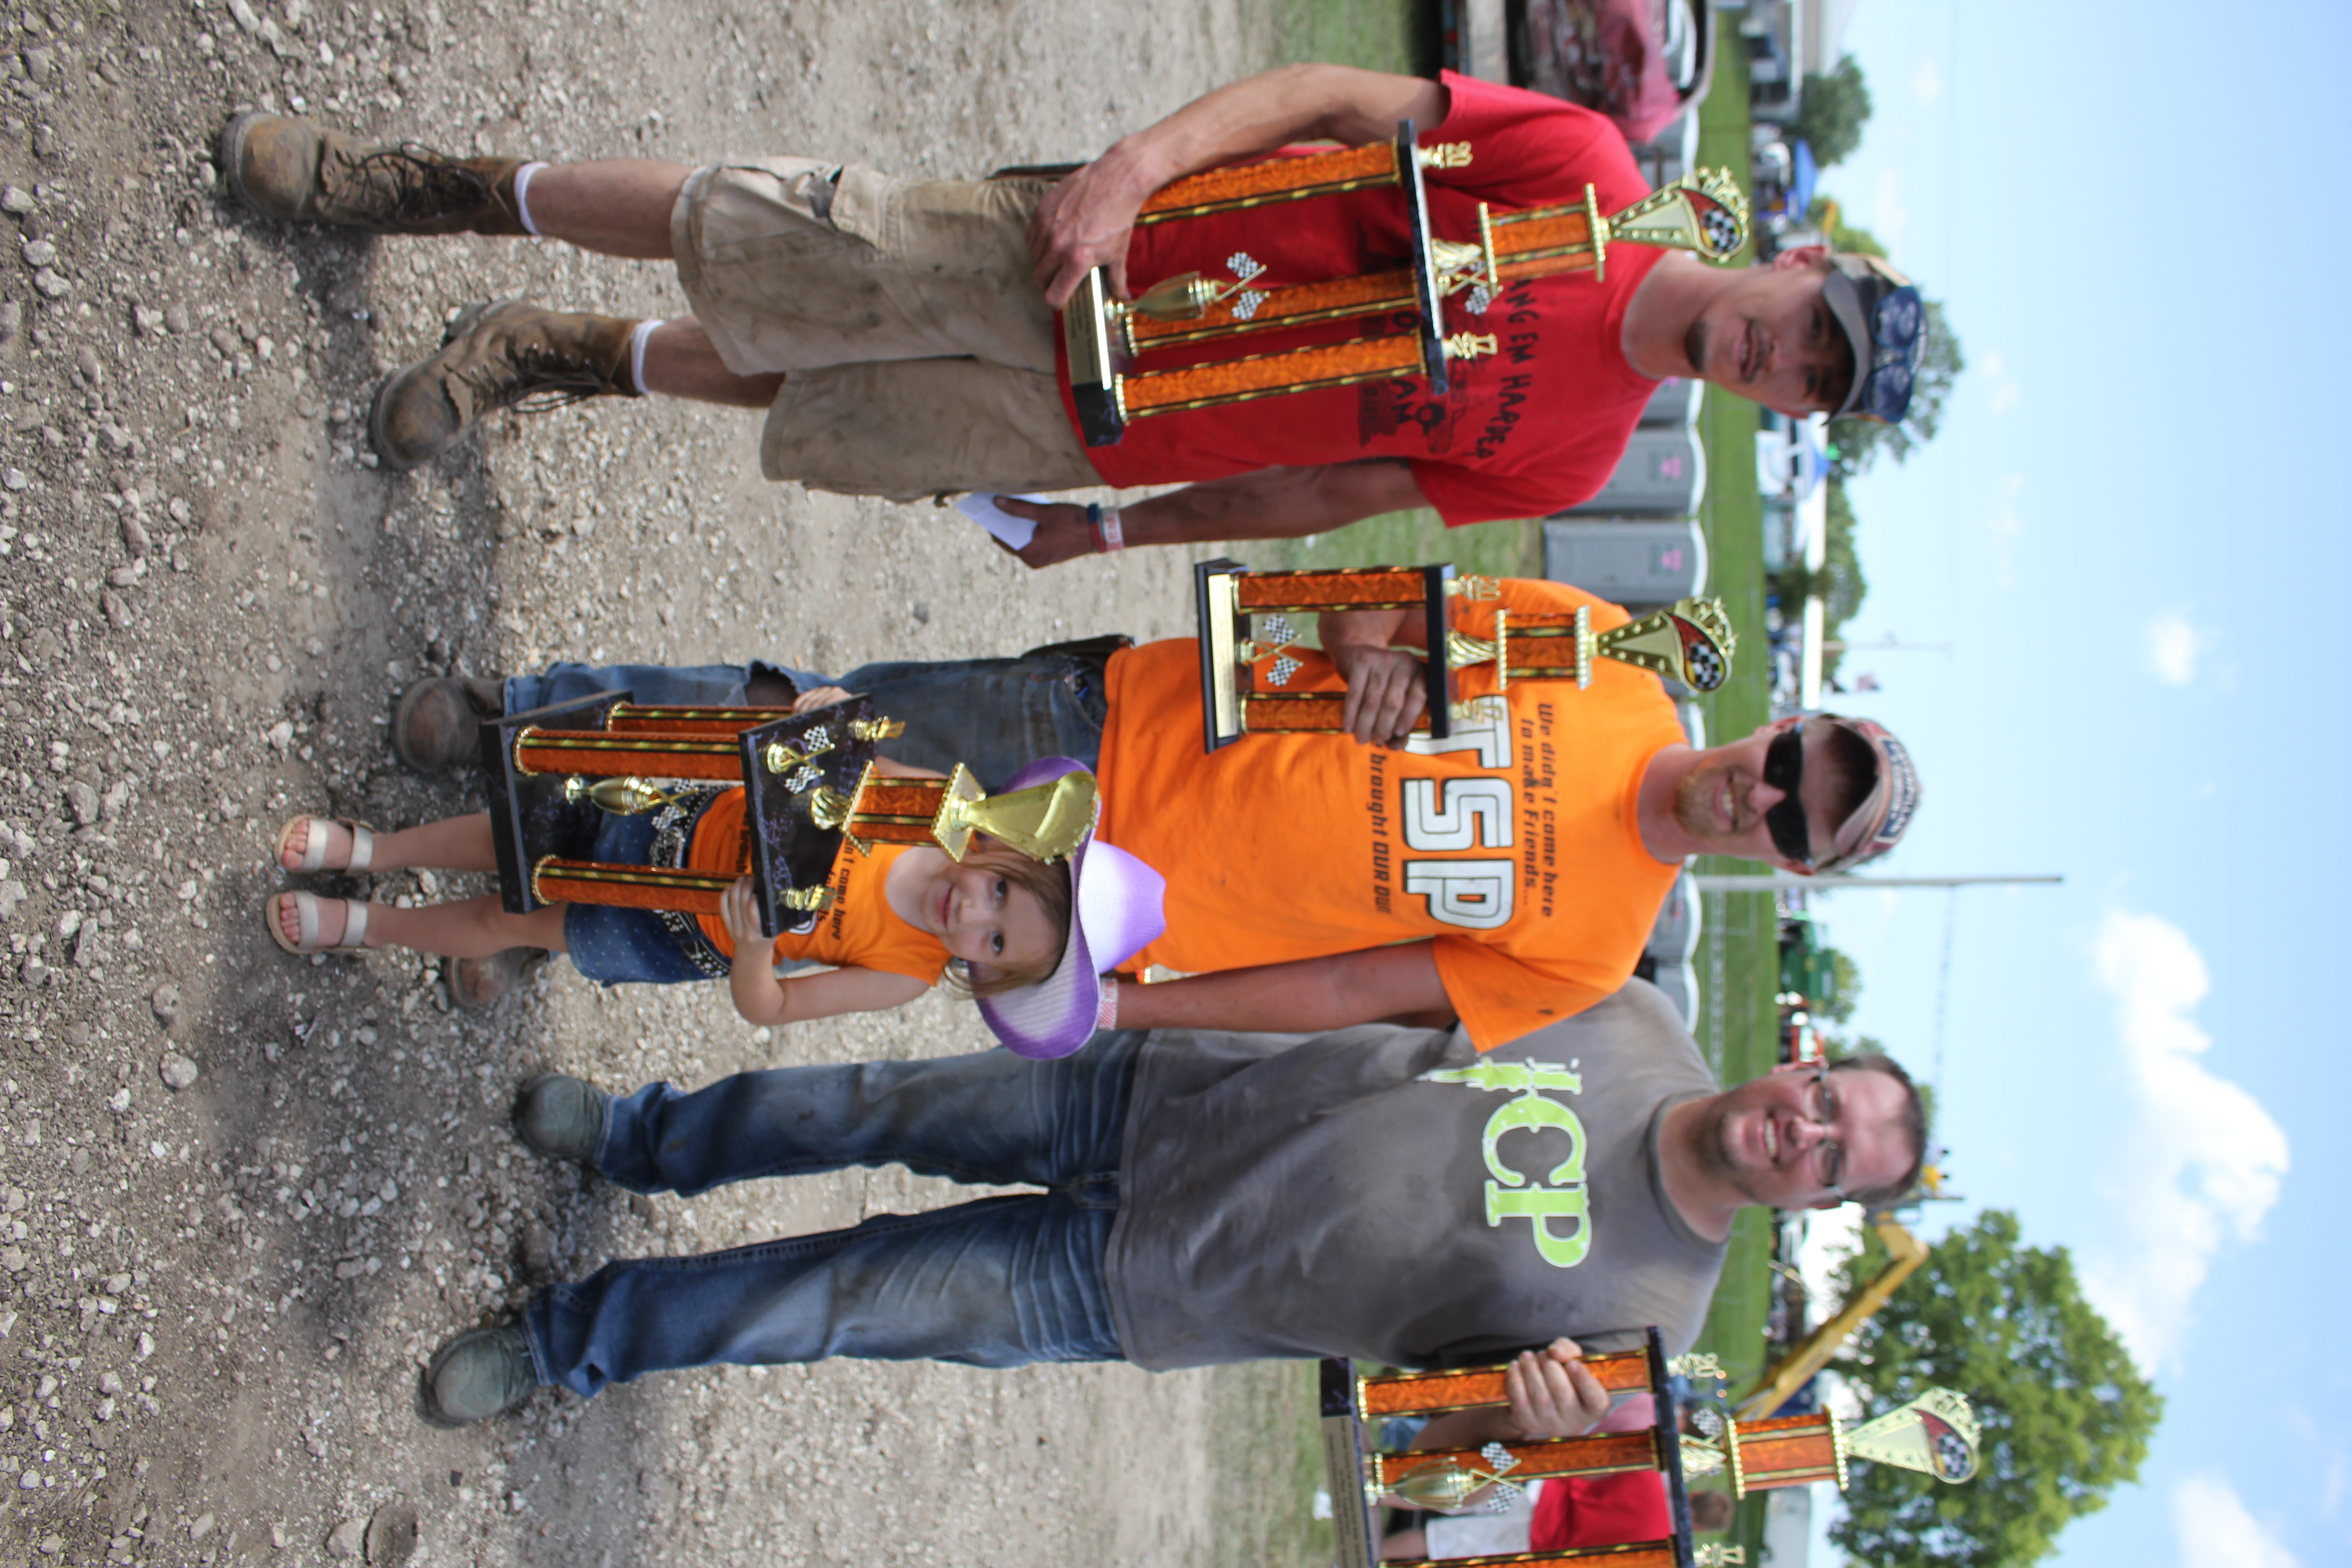 Winning the Football Demo were (from left) Nick Burgin and Josh Burgin of Edgewood, and Mitch Wendling of Manchester. In front is Josh's daughter Kendall.